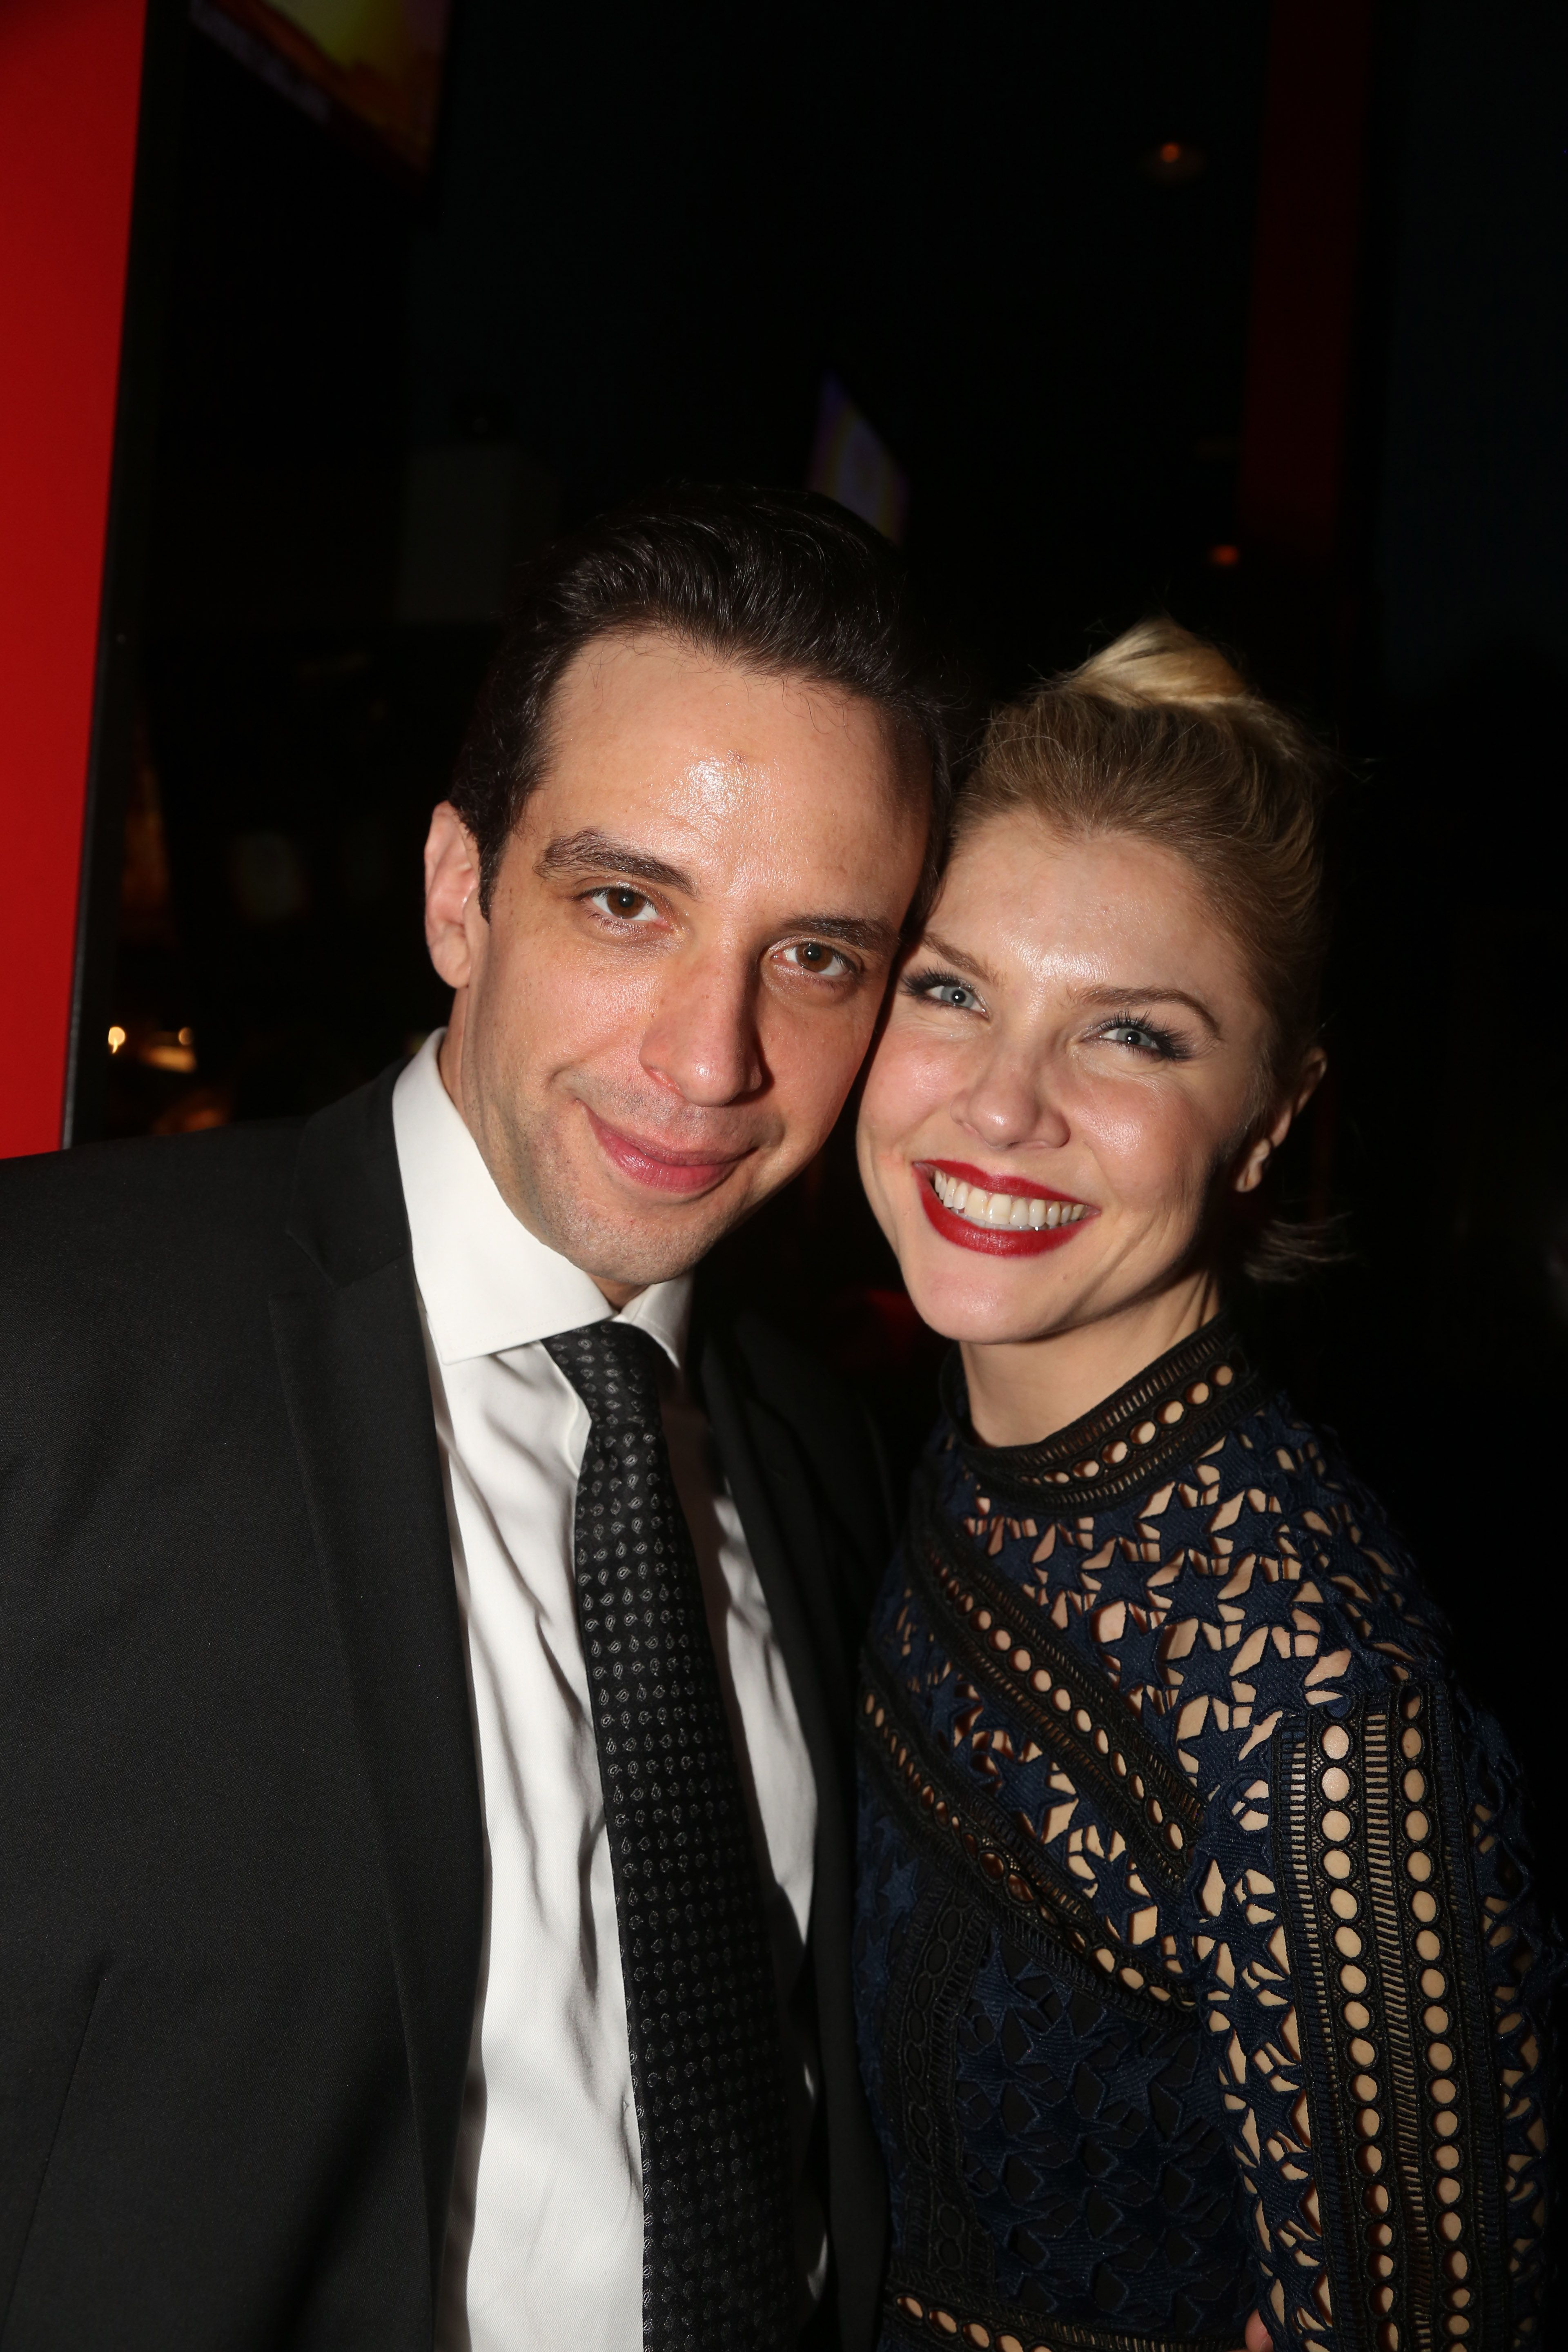 """Nick Cordero and Amanda Kloots at the after party for Manhattan Concert Production's Broadway series """"Crazy For You"""" One Night Only Production at Planet Hollywood Times Square in New York City 